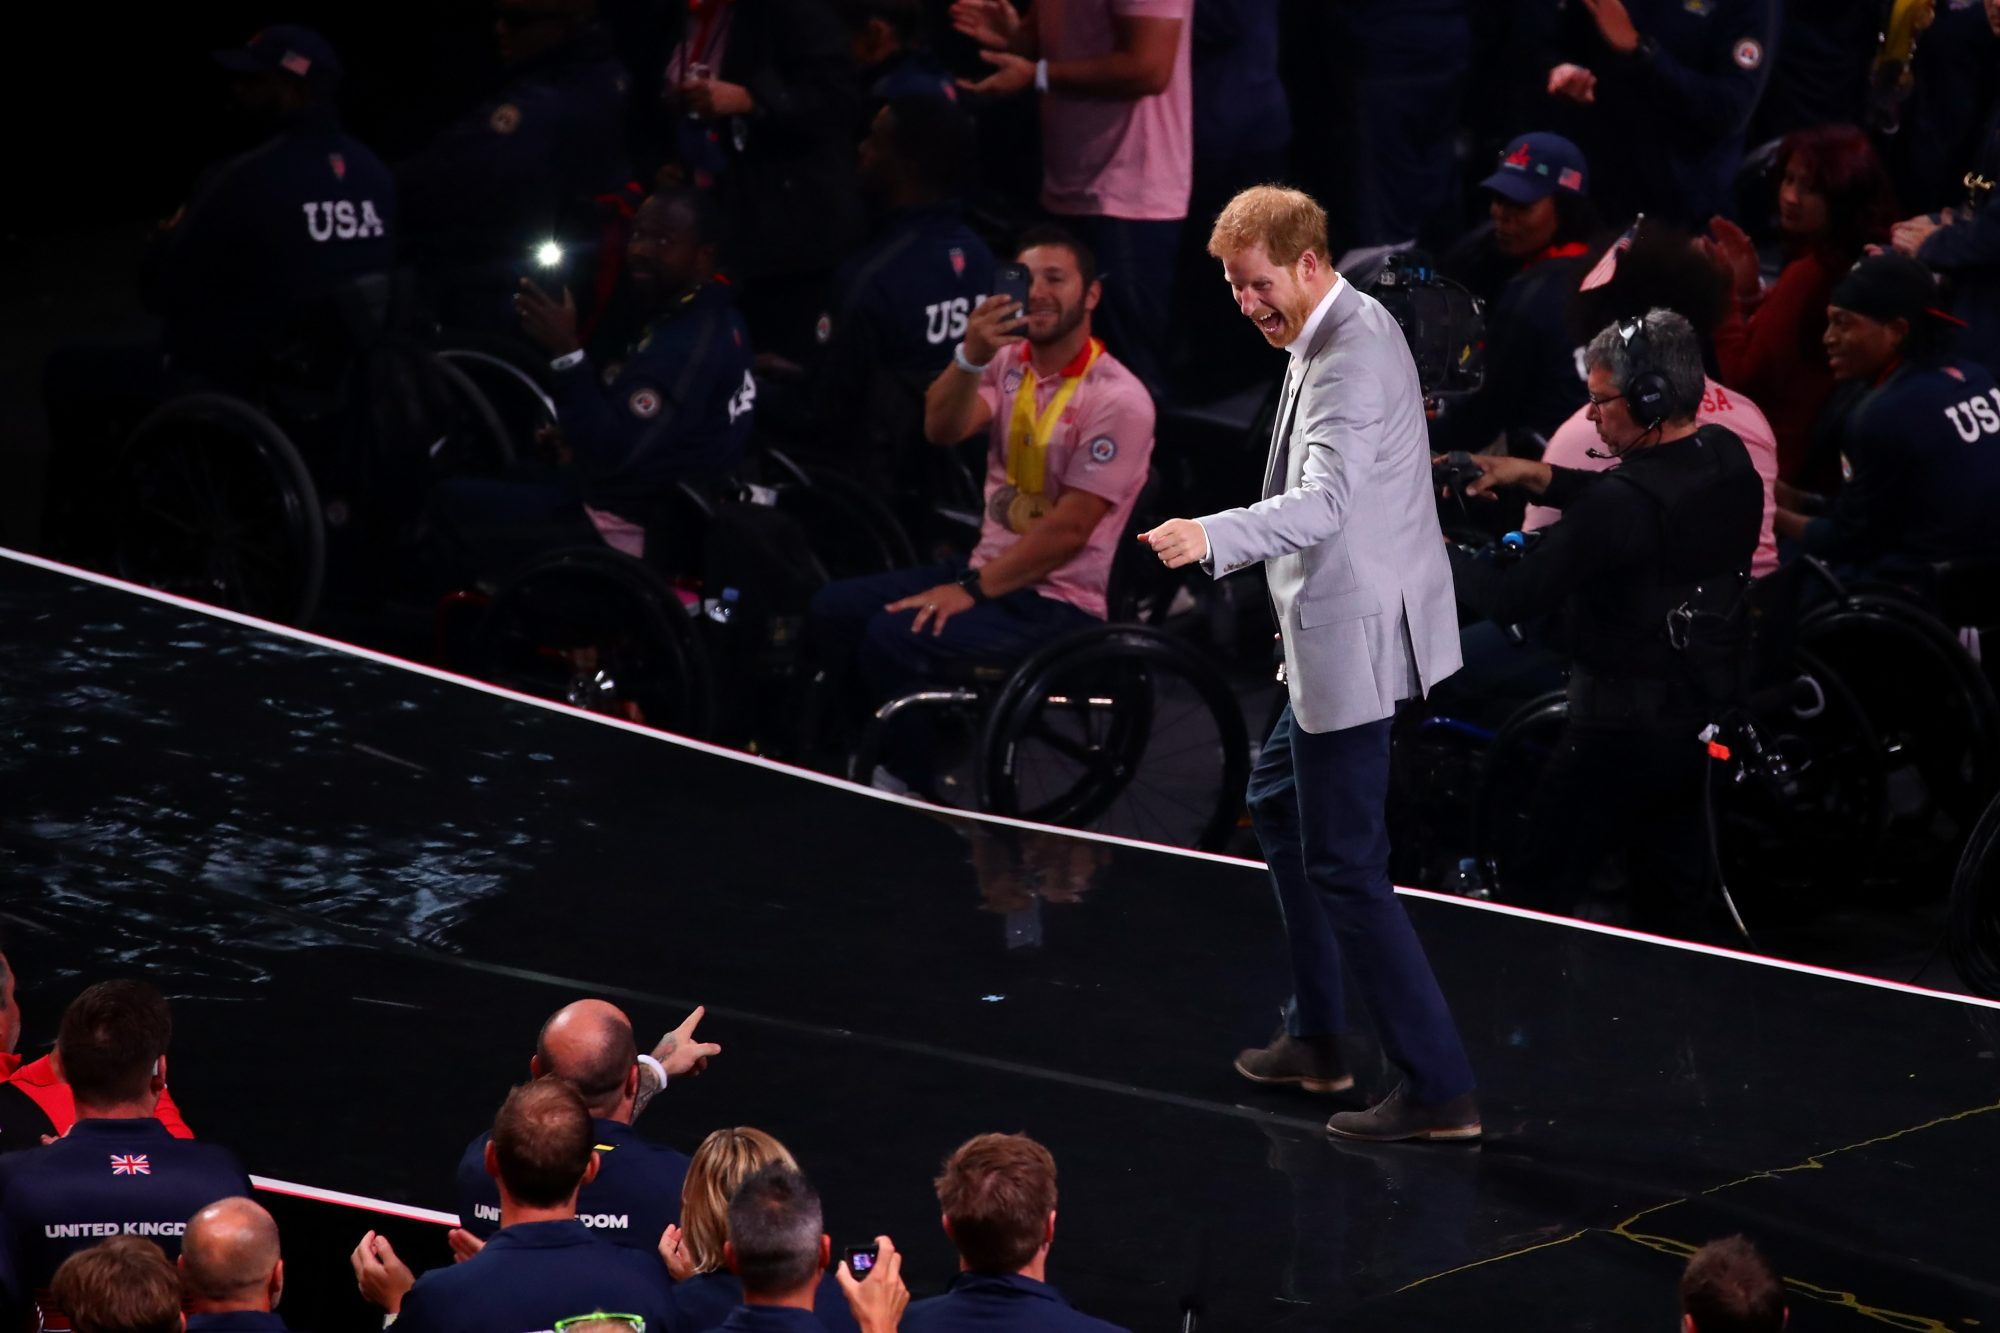 Prince Harry onstage at Invictus Games Closing ceremony 2017